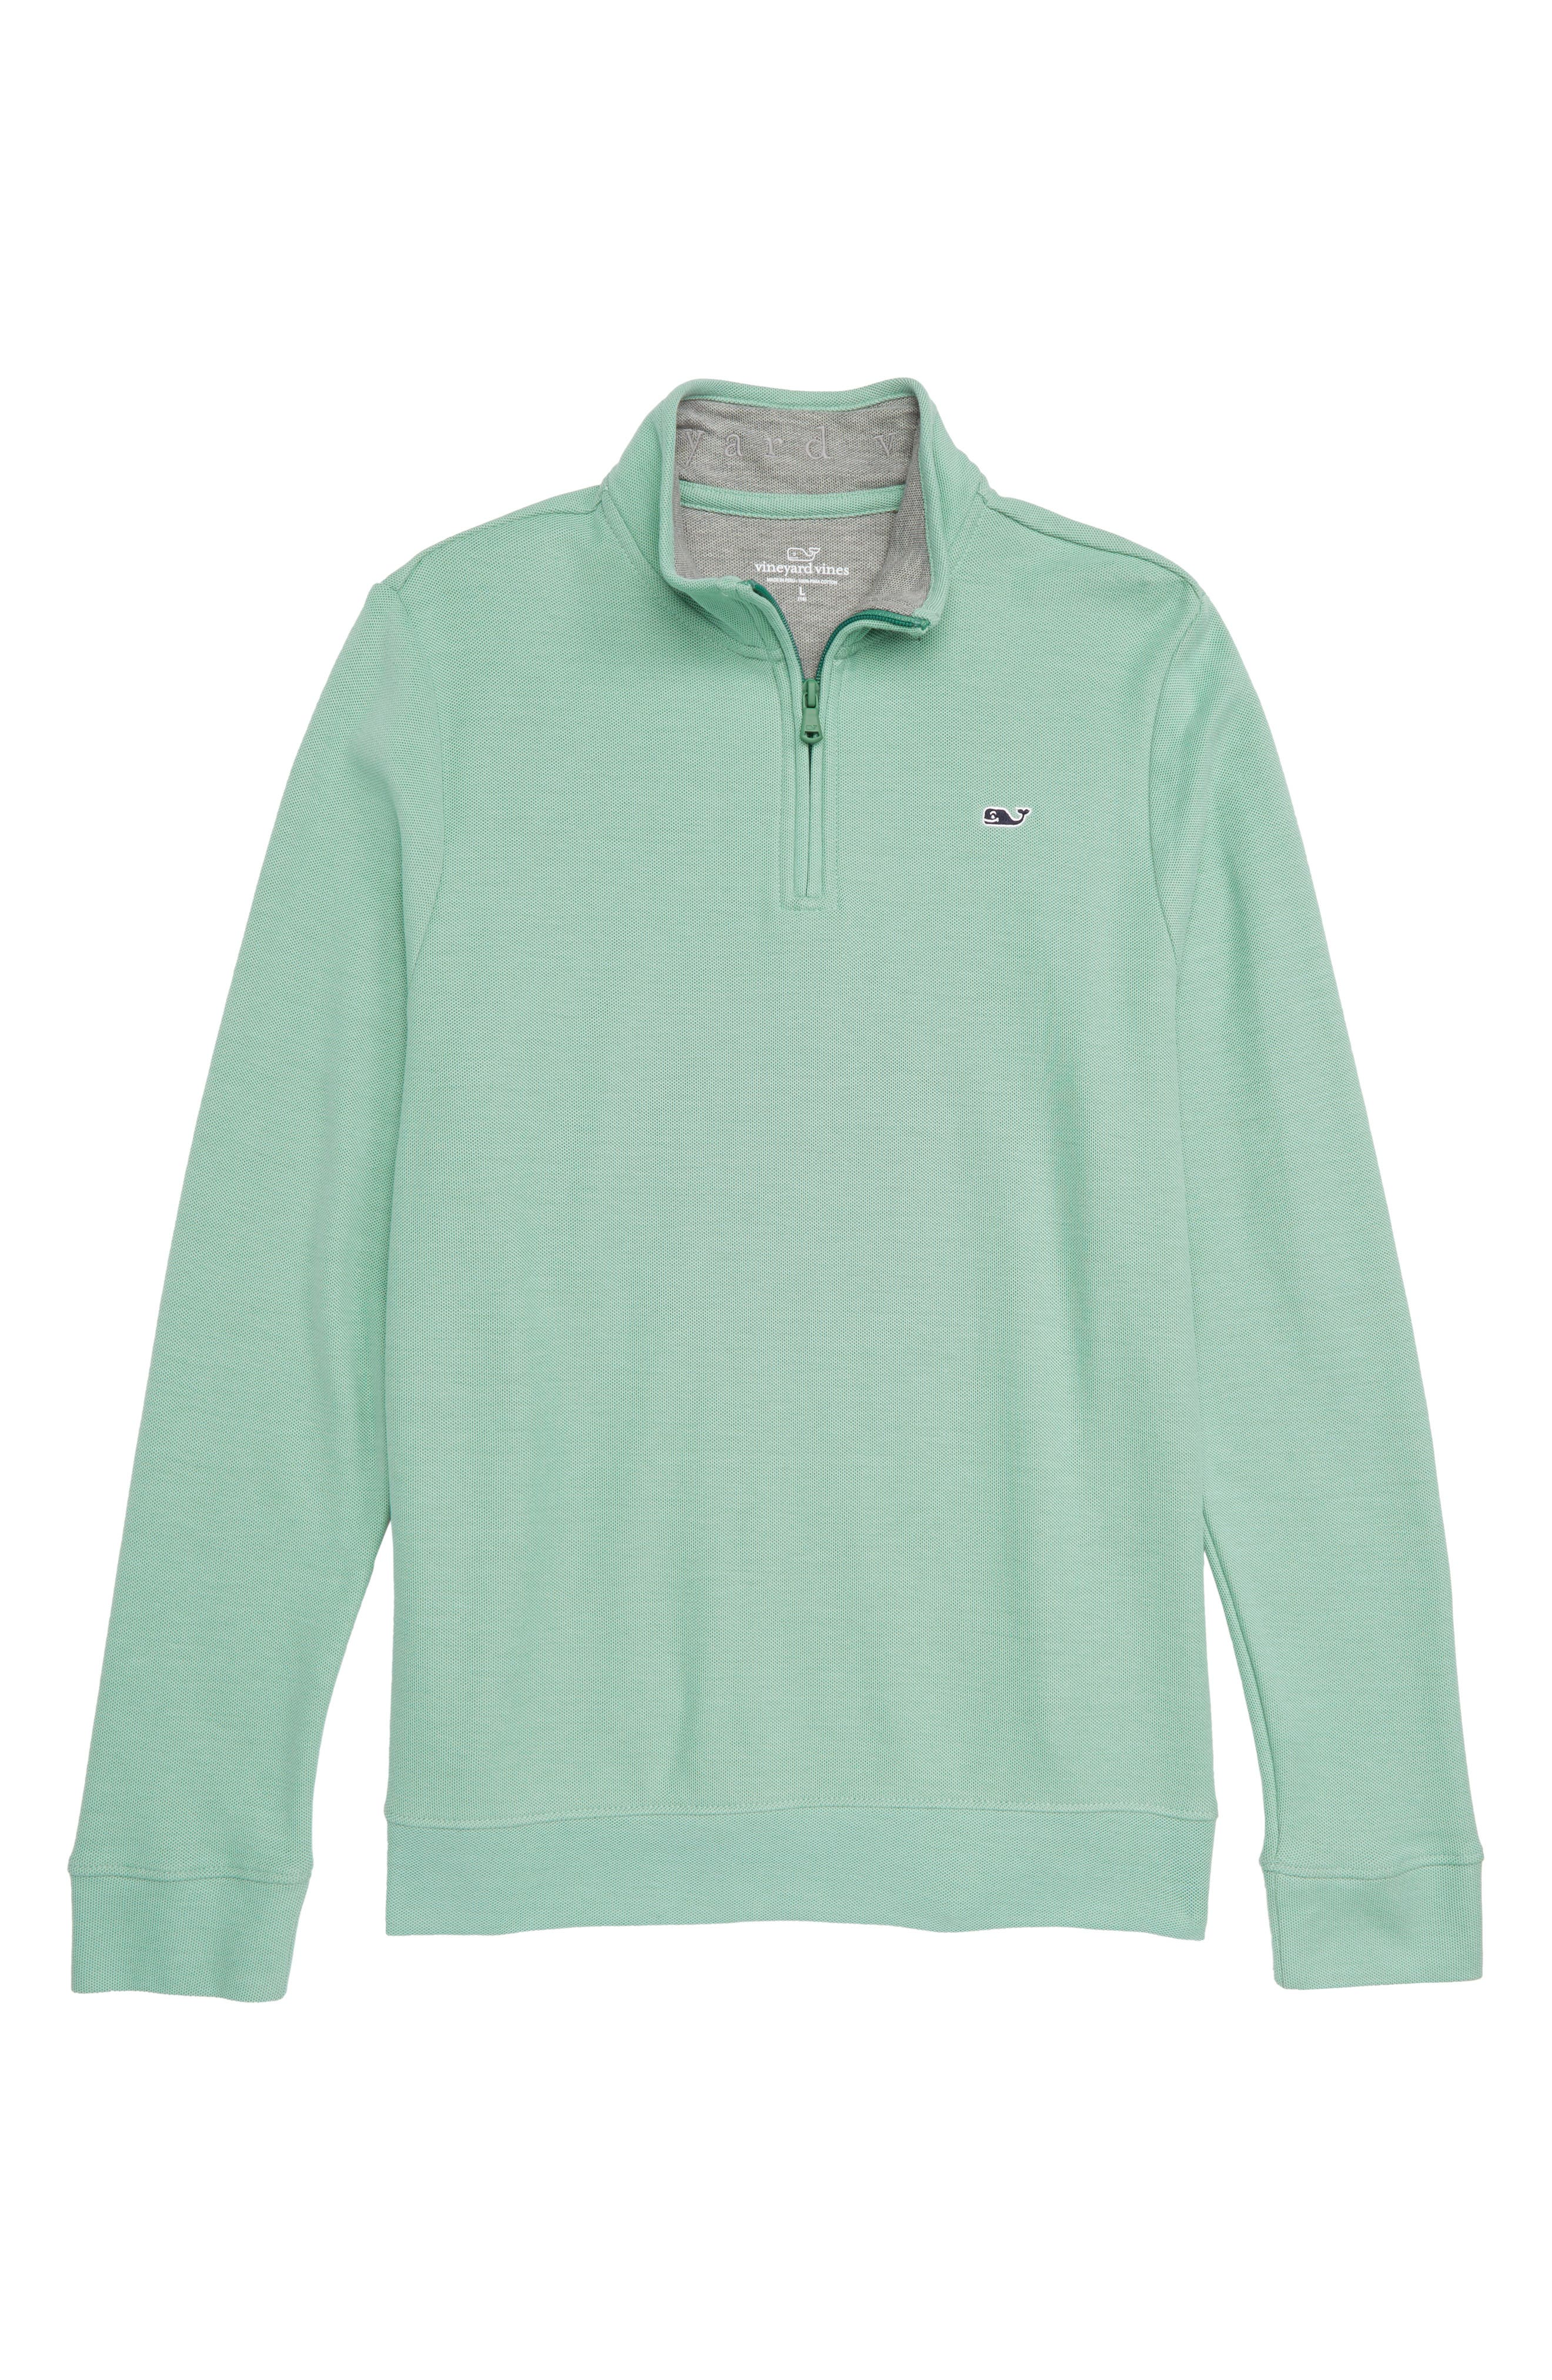 Quarter Zip Sweater,                             Main thumbnail 1, color,                             STARBOARD GREEN